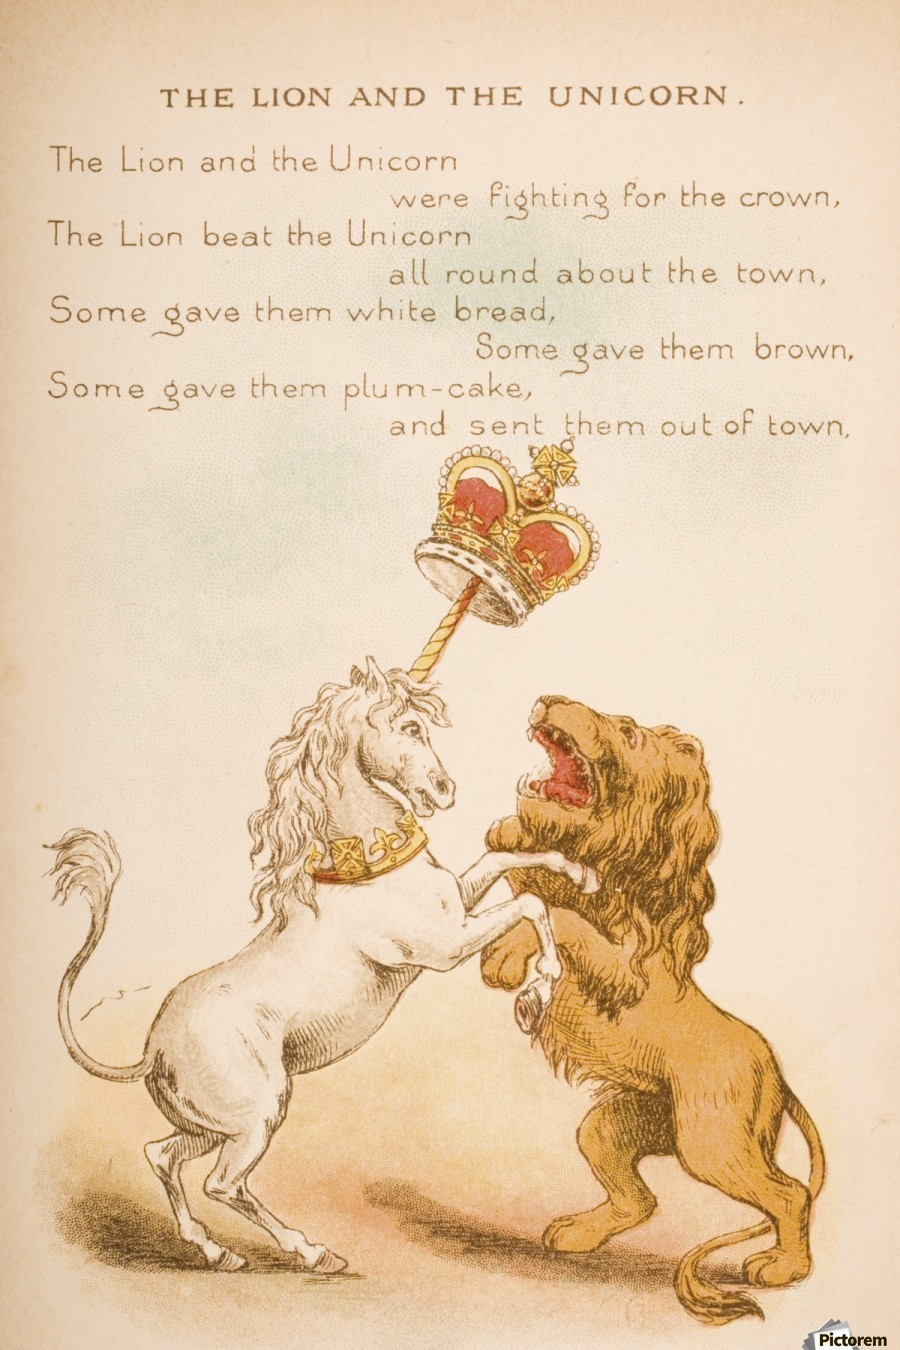 The Lion and the Unicorn from Old Mother Goose's Rhymes and Tales  Illustration by Constance Haslewood  Published by Frederick Warne & Co London and New York circa 1890s  Chromolithography by Emrik & Binger of Holland  Print